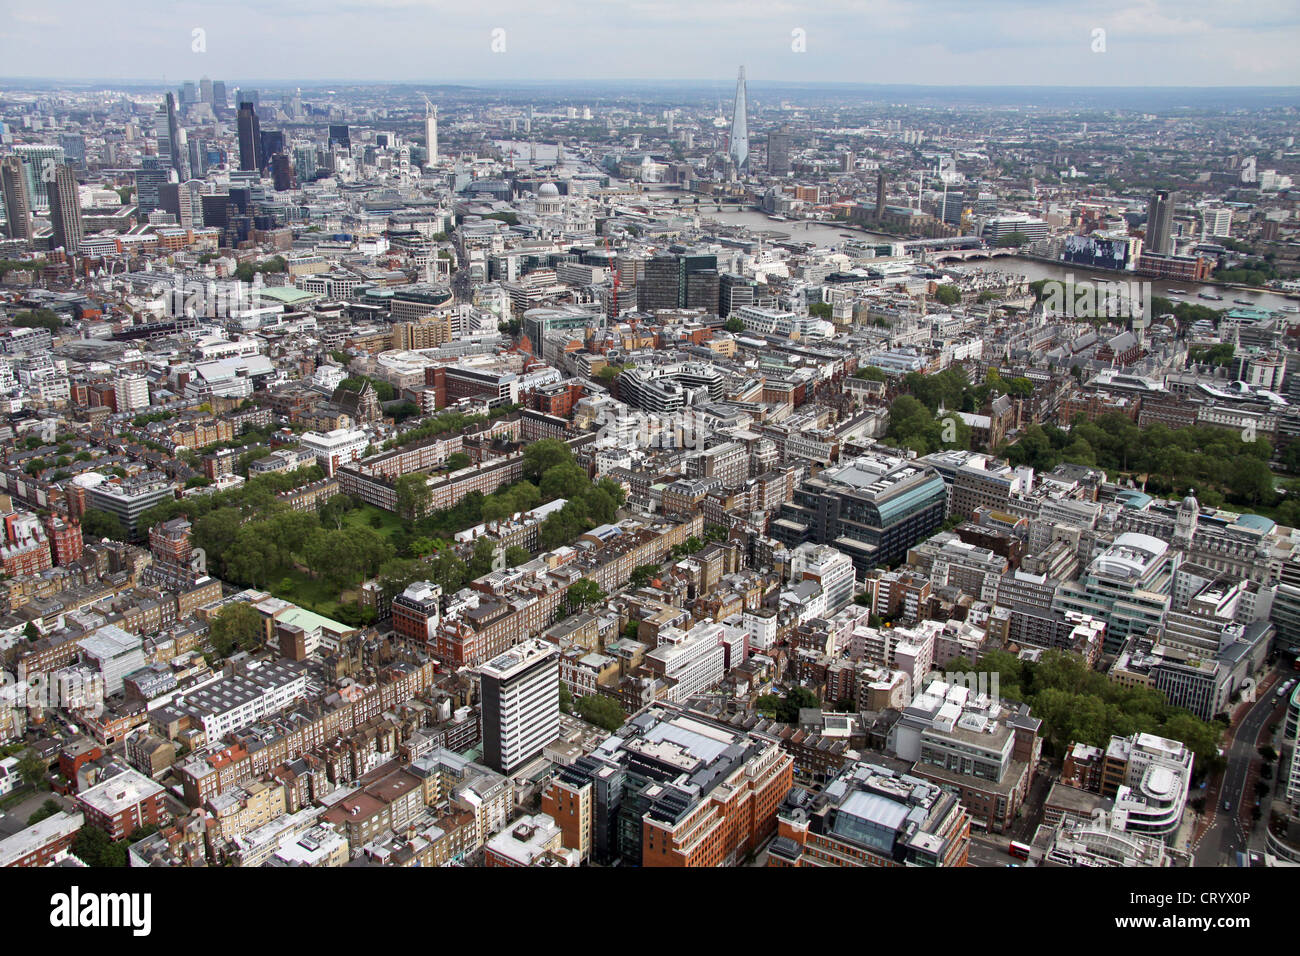 aerial view of Gray's Inn Gardens, Theobald's Road and Bedford Row London WC1 - Stock Image